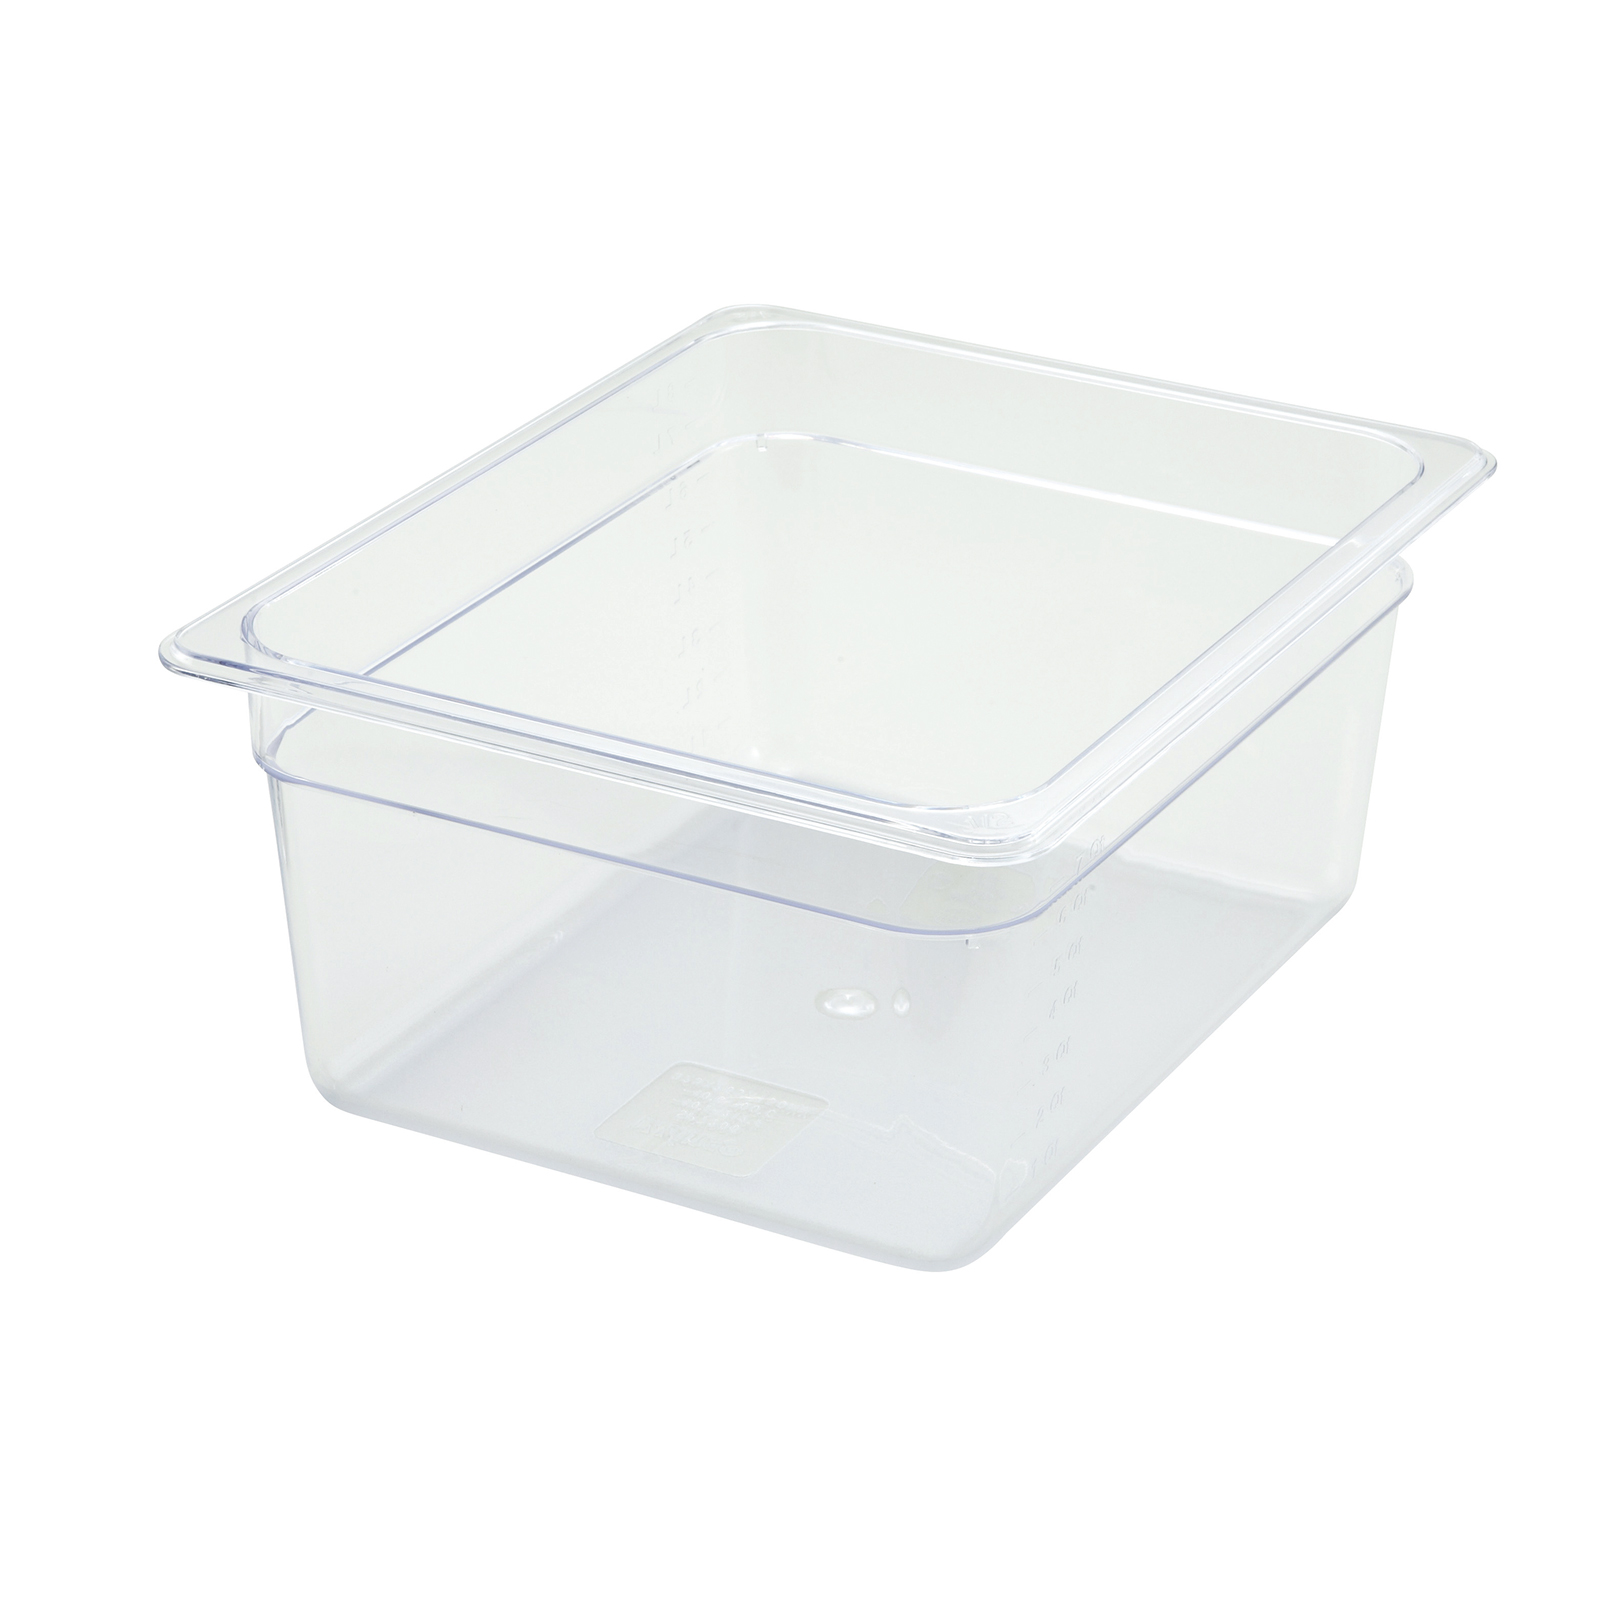 Winco SP7206 food pan, plastic